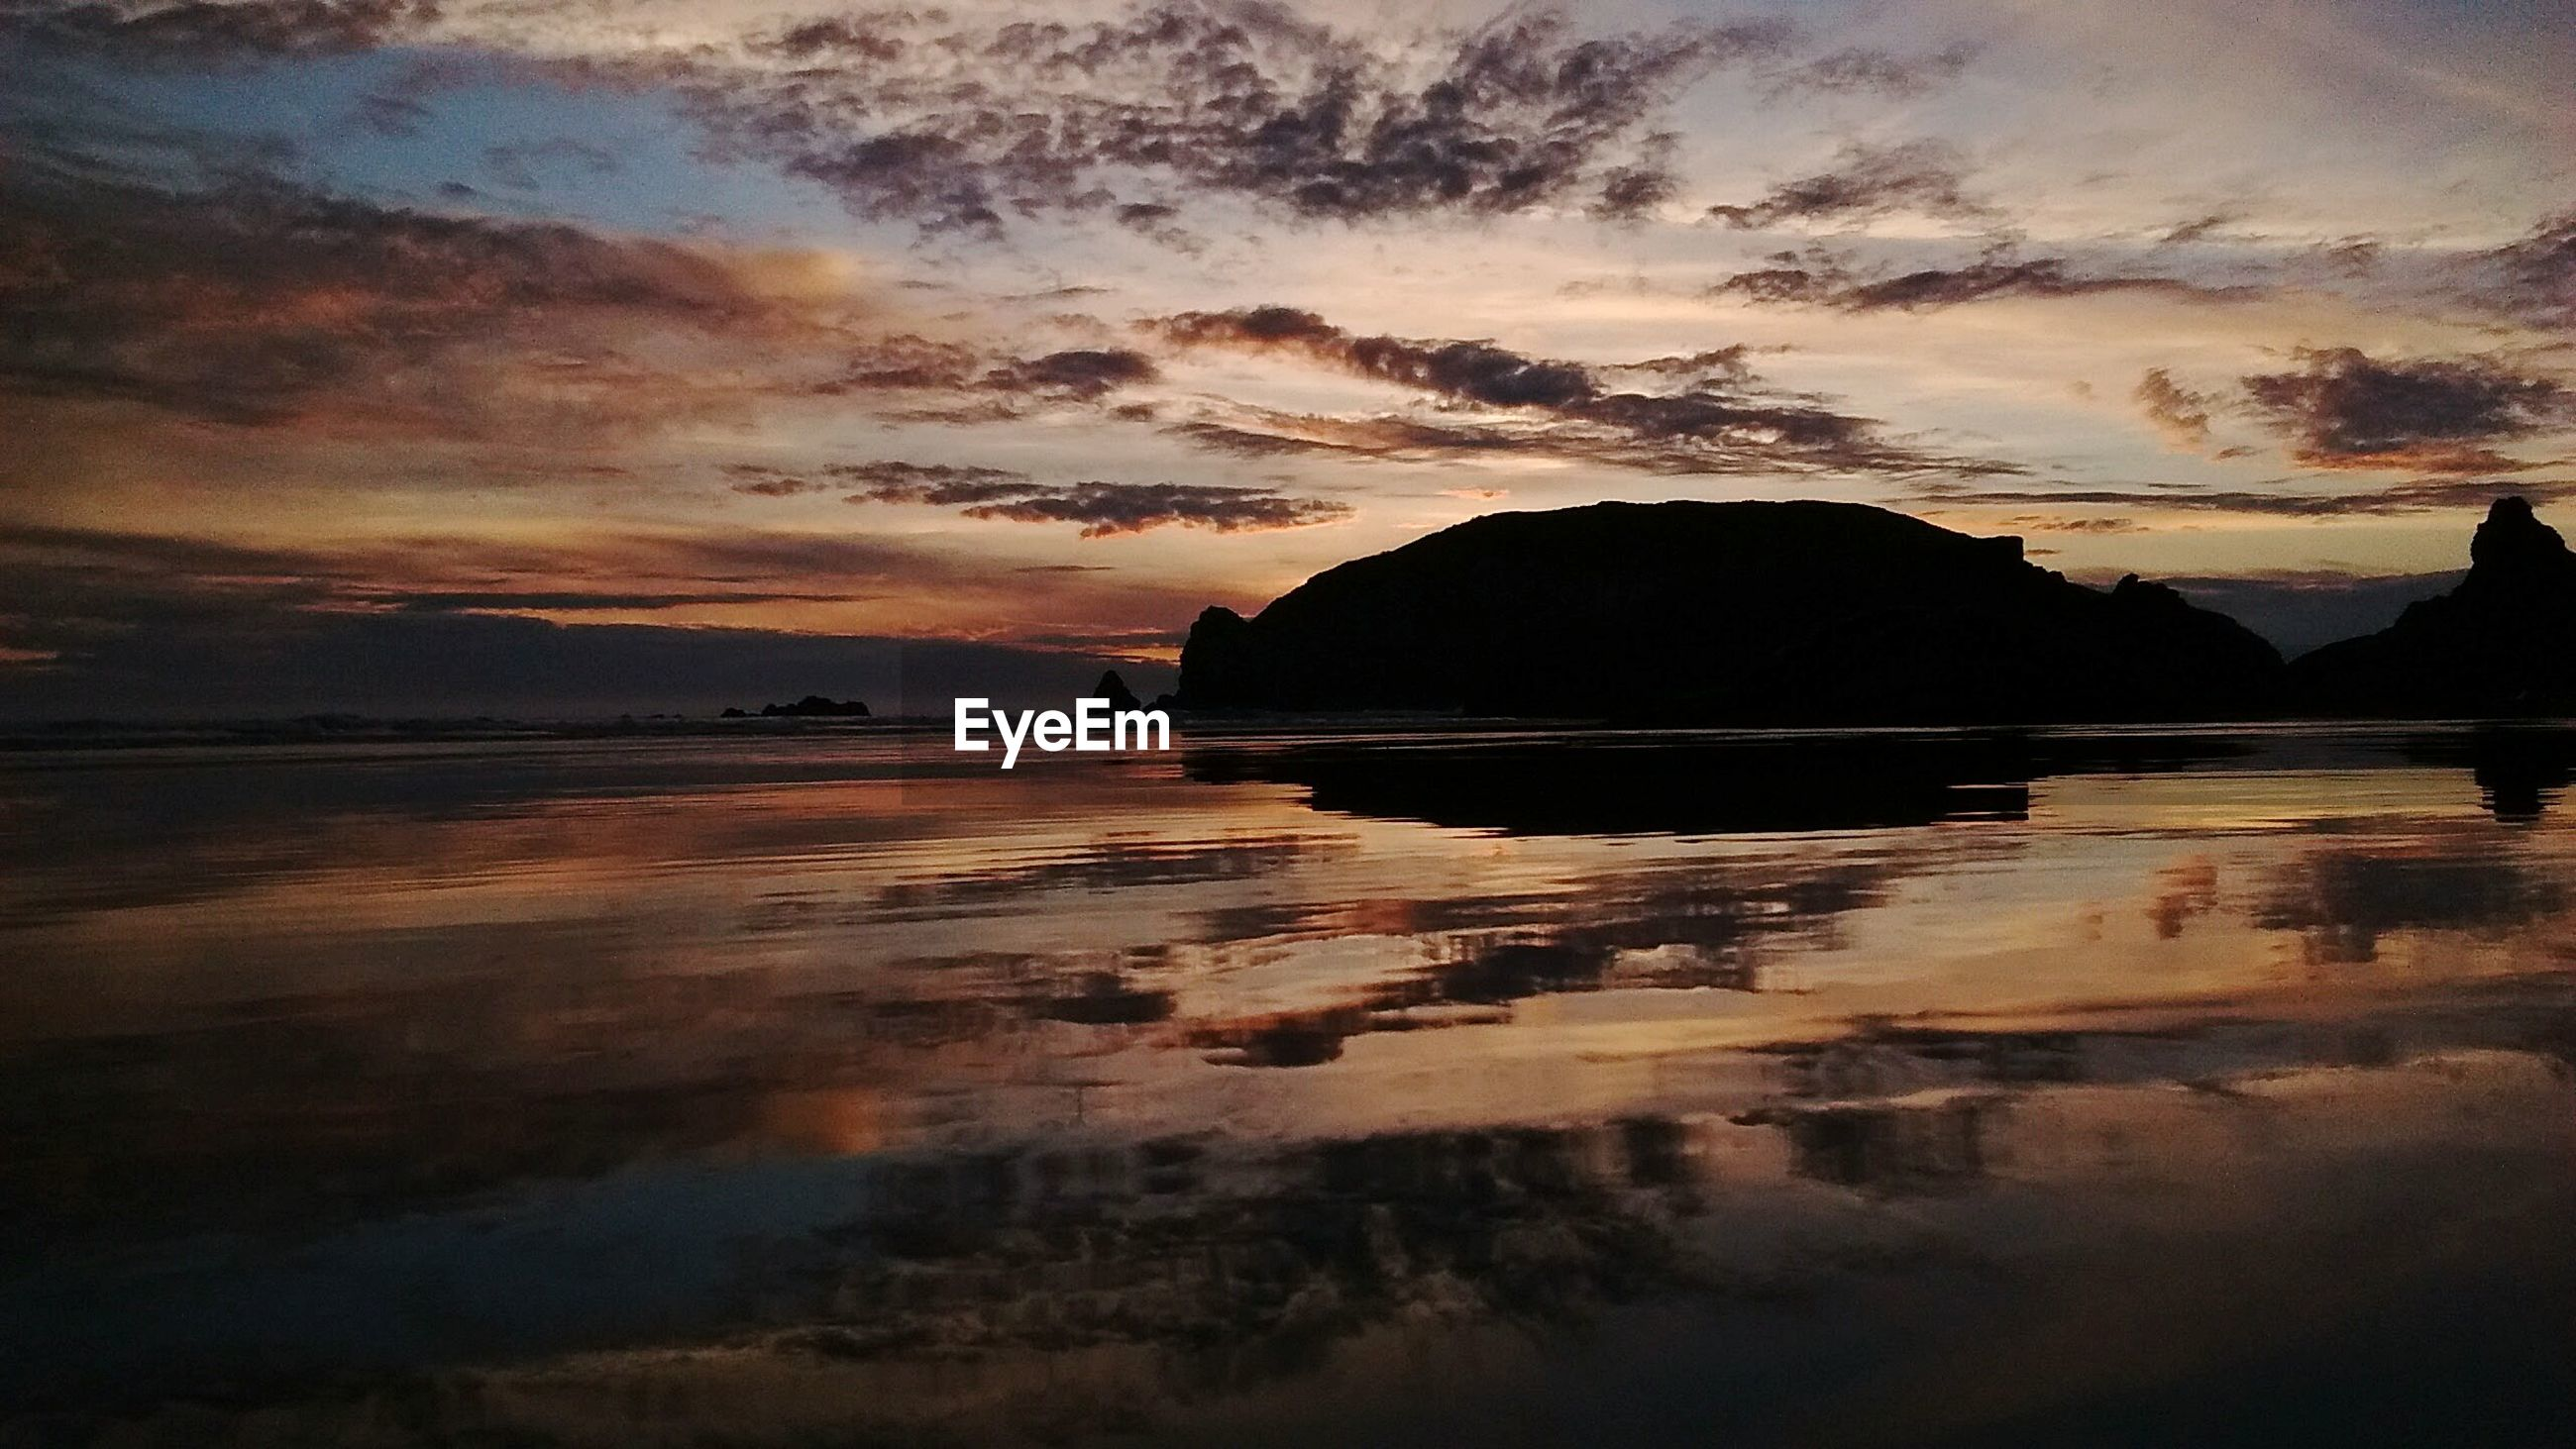 water, sunset, tranquil scene, silhouette, tranquility, scenics, sky, beauty in nature, sea, reflection, beach, nature, mountain, idyllic, dusk, shore, cloud - sky, sand, calm, outdoors